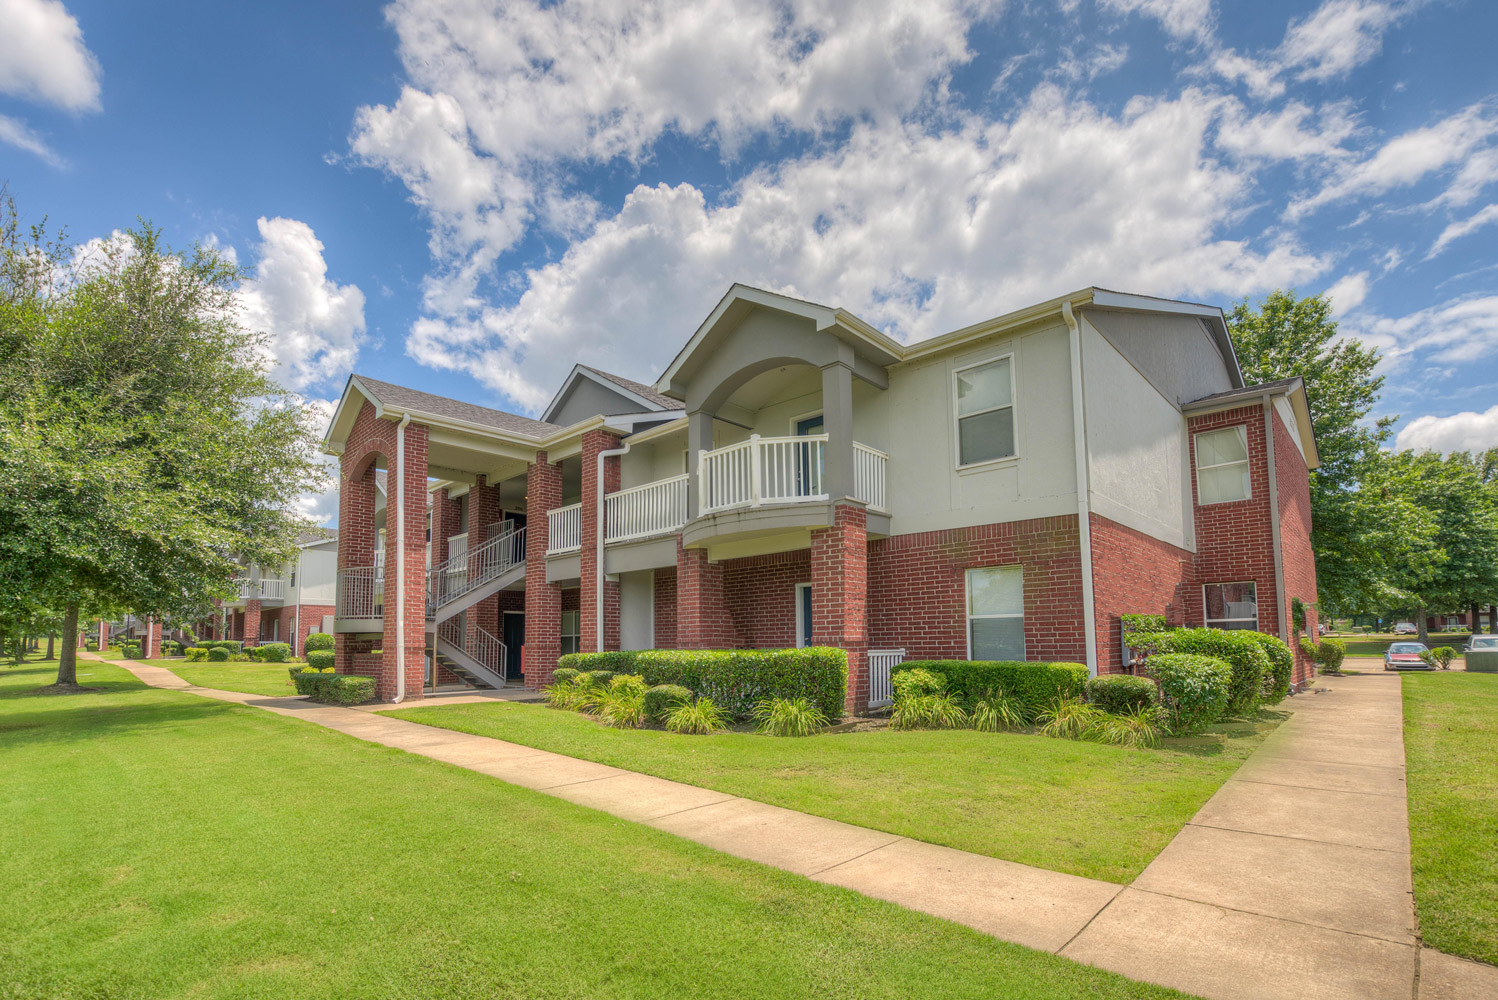 Lush Landscaping at The Park at Forest Hill Apartments in Memphis, Tennessee